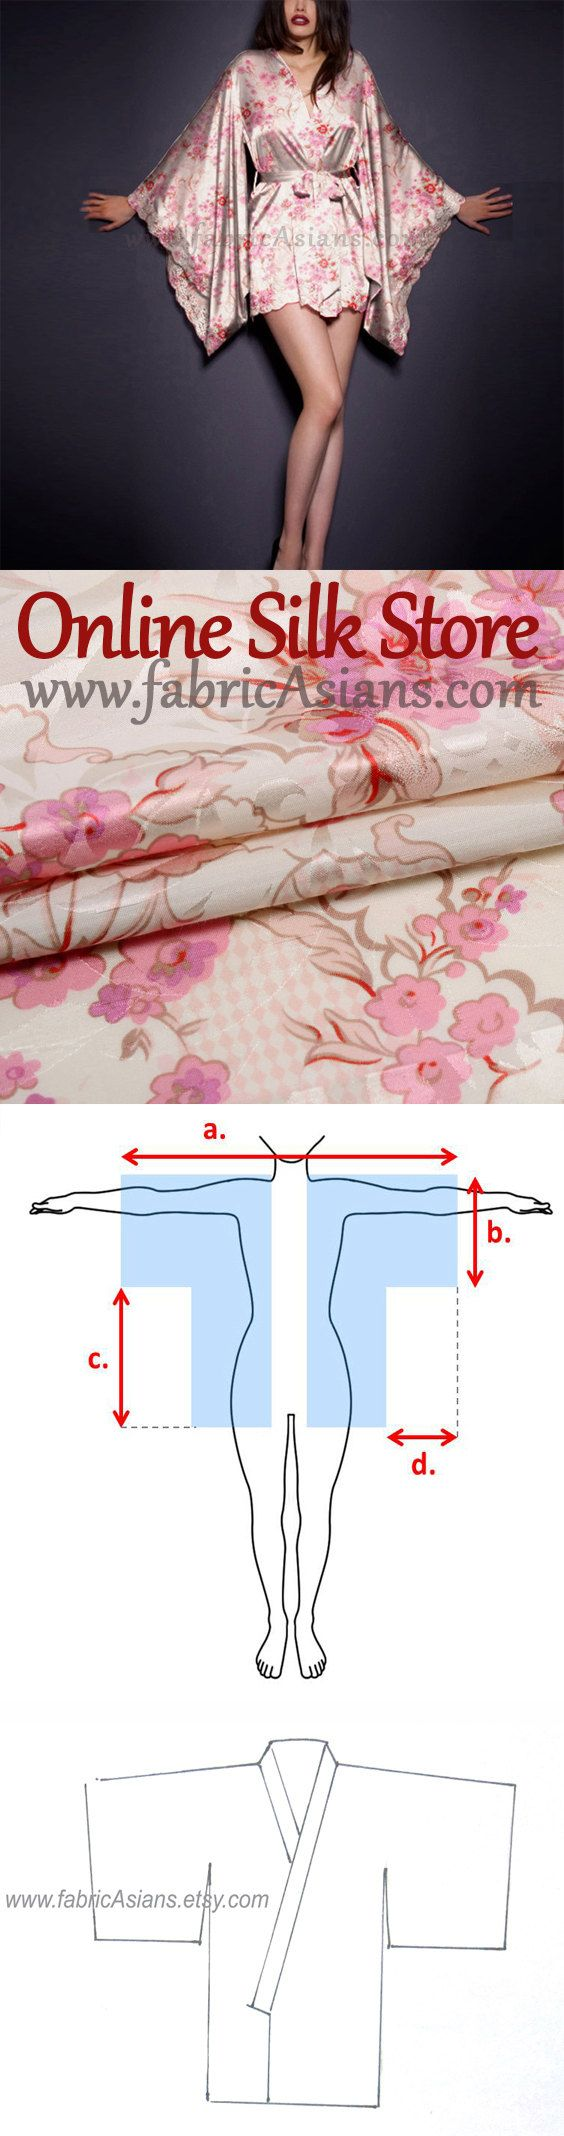 TOMA DE MEDIDAS PARA UN KIMONO-Free Kimono Sewing Pattern. SALE Cherry Blossom Fabric. Pink Floral Silk. by fabricAsians